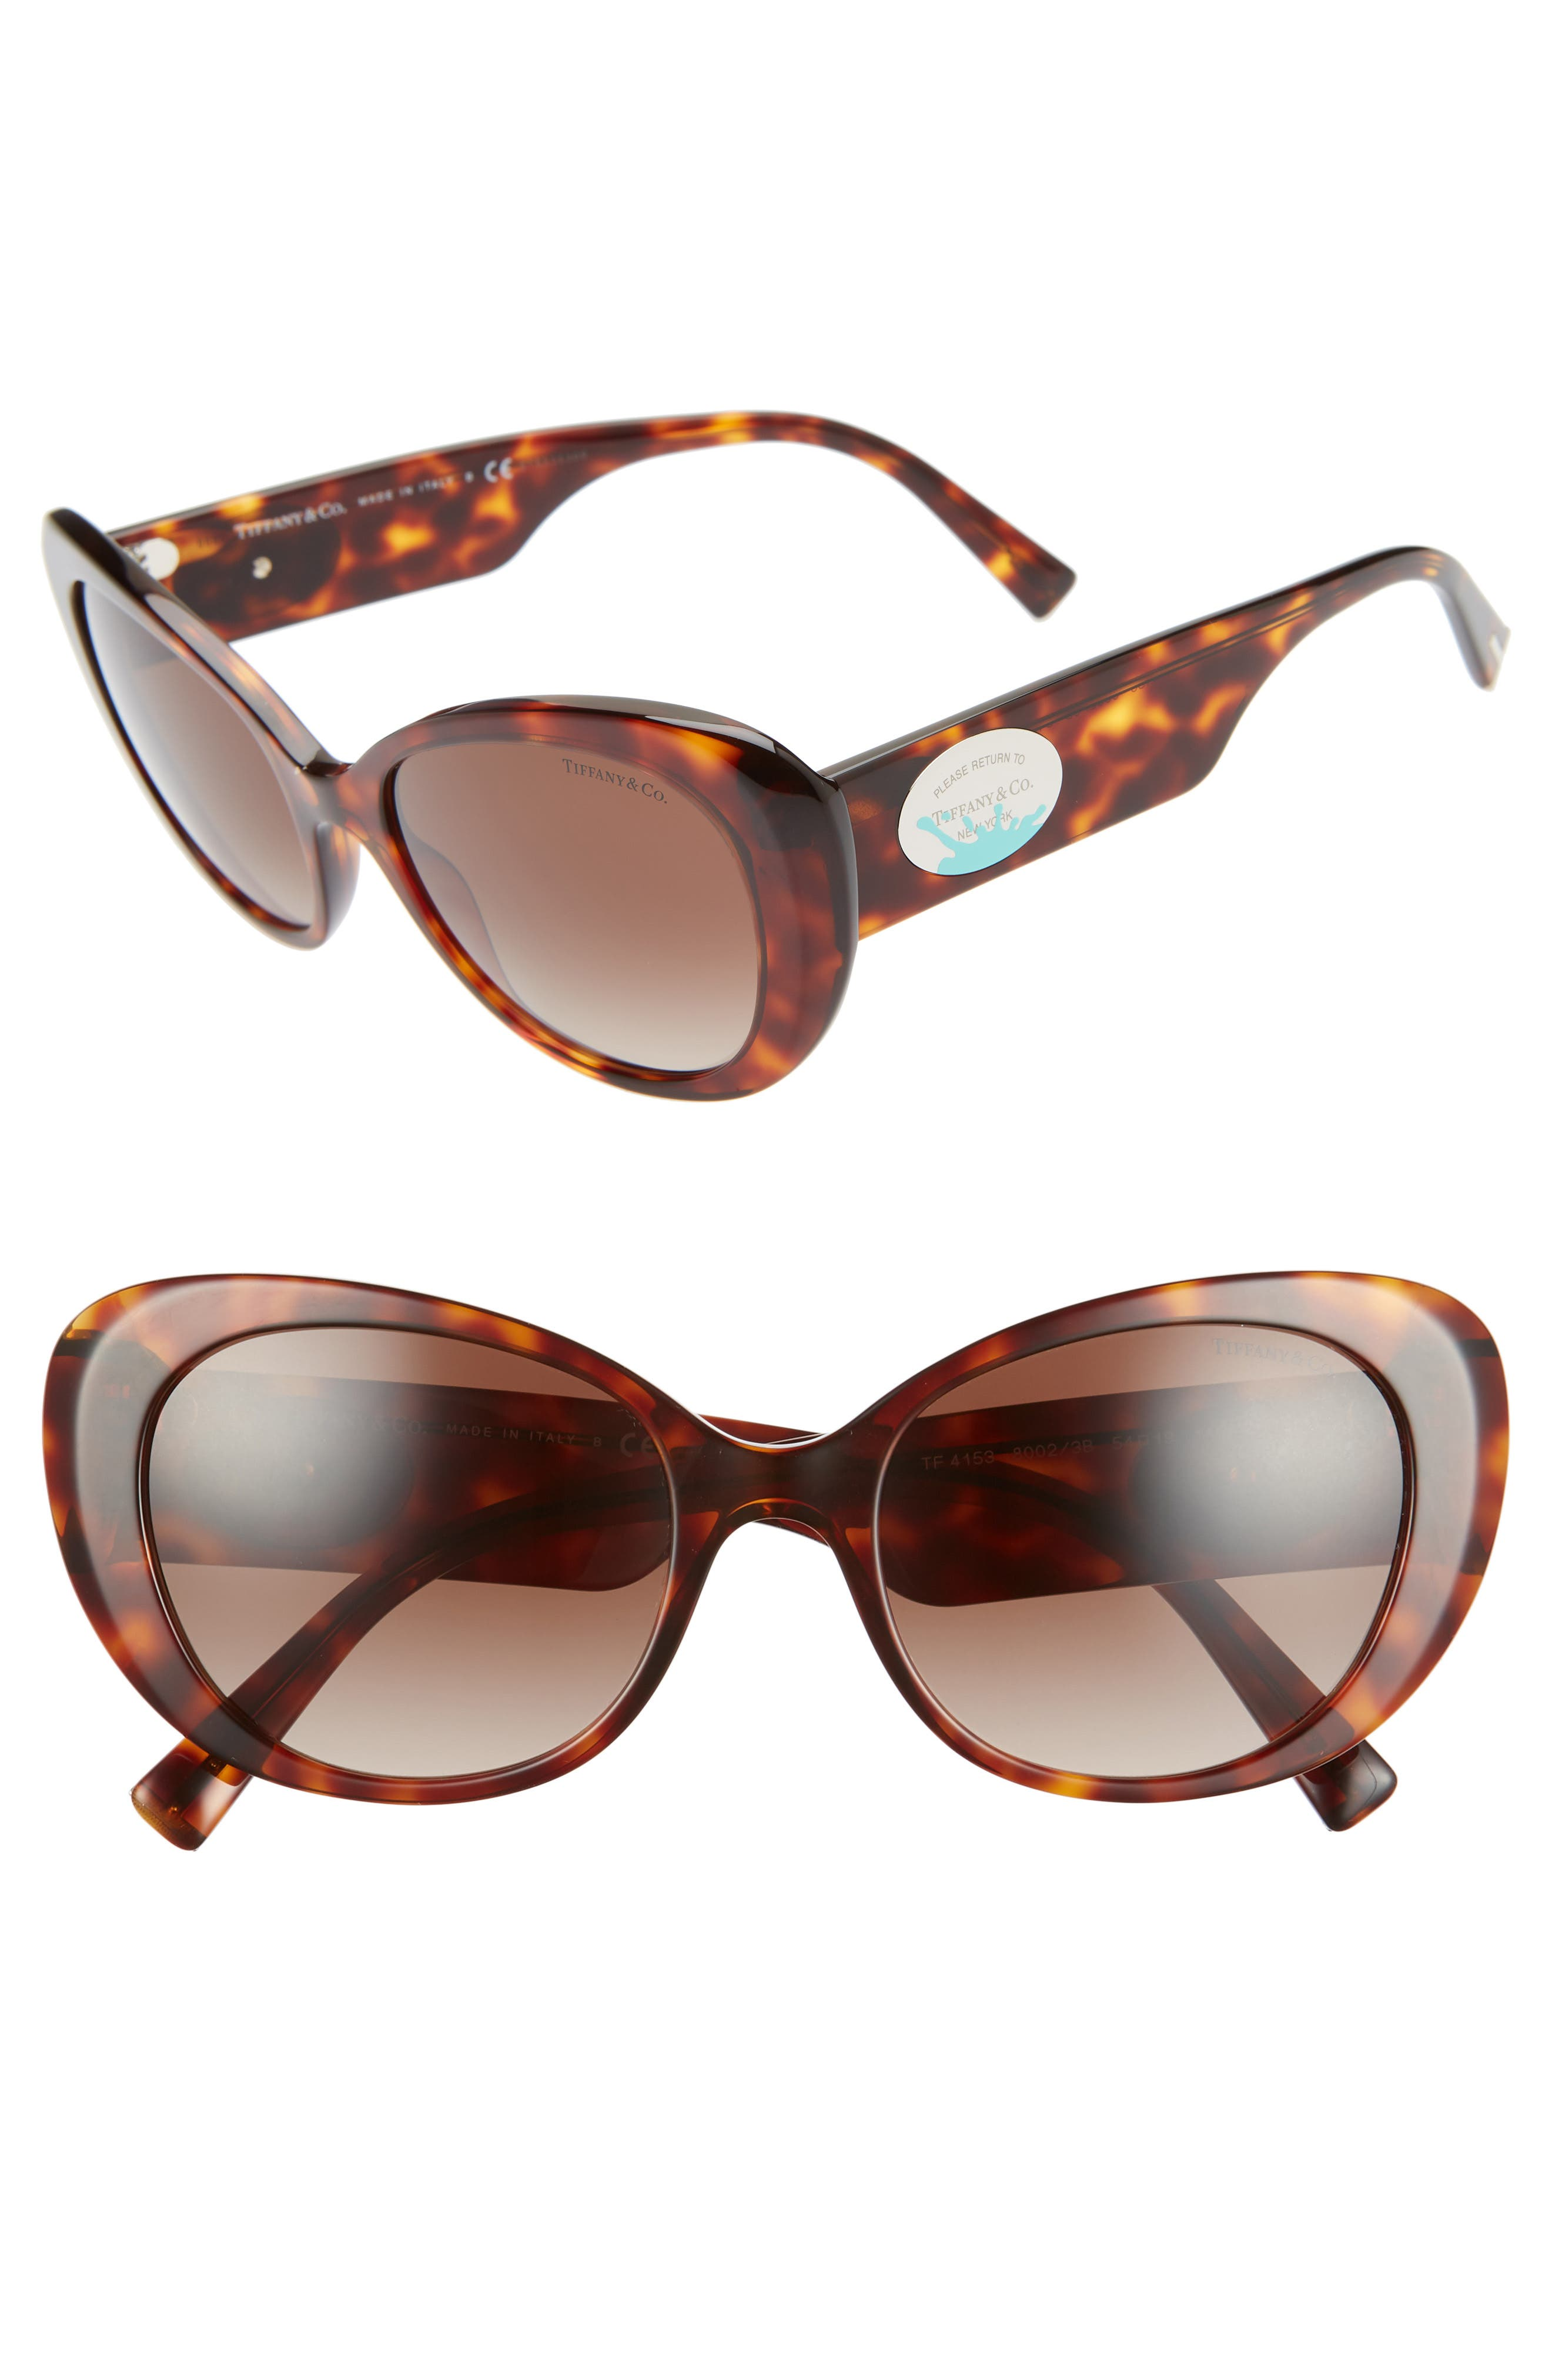 TIFFANY & CO Return To Tiffany 54Mm Oval Sunglasses - Brown Gradient